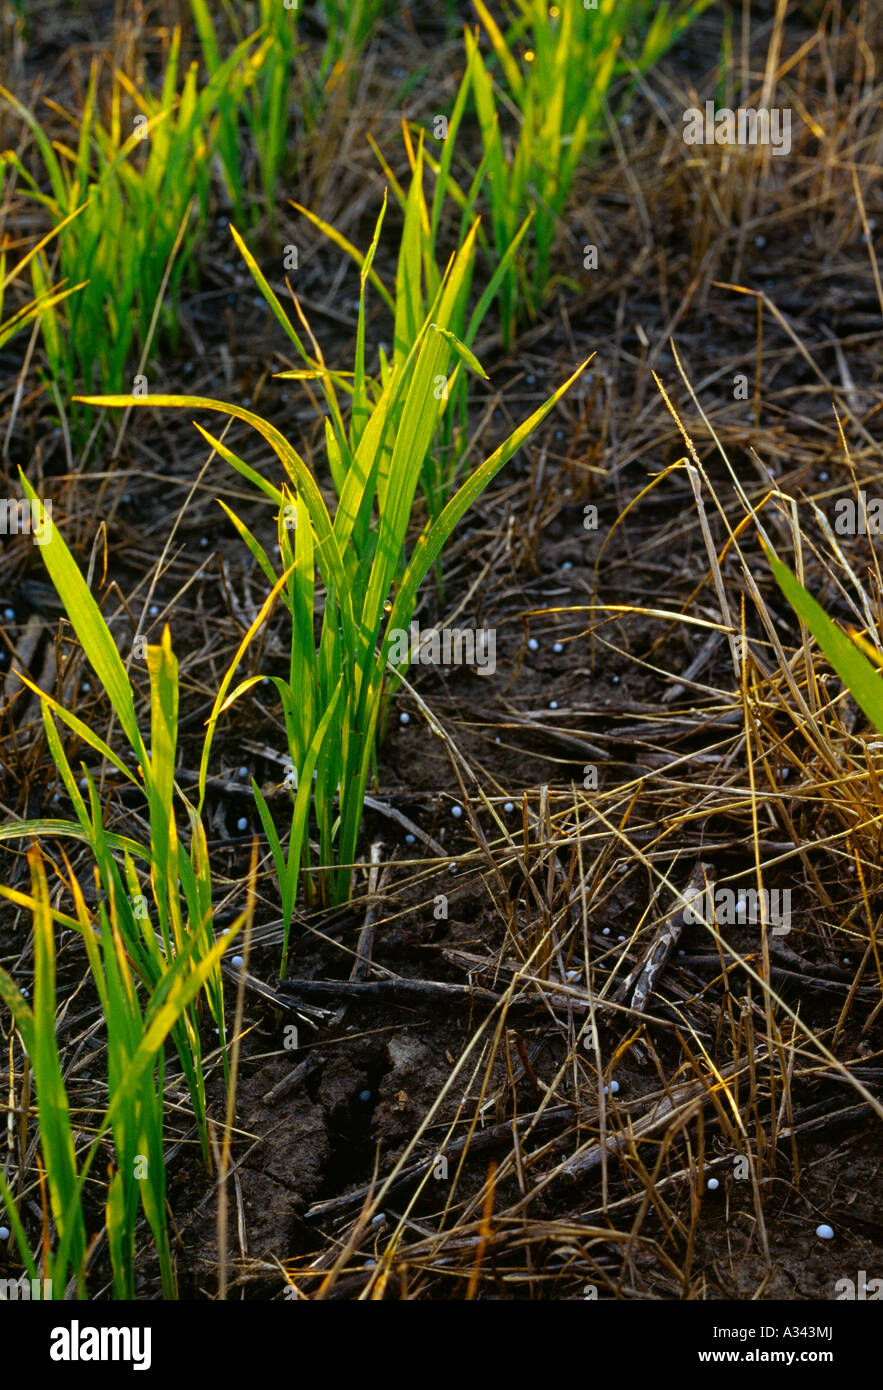 Agriculture - Closeup of early growth no till rice plants growing in soybean & weed stubble at the pre flood stage Stock Photo